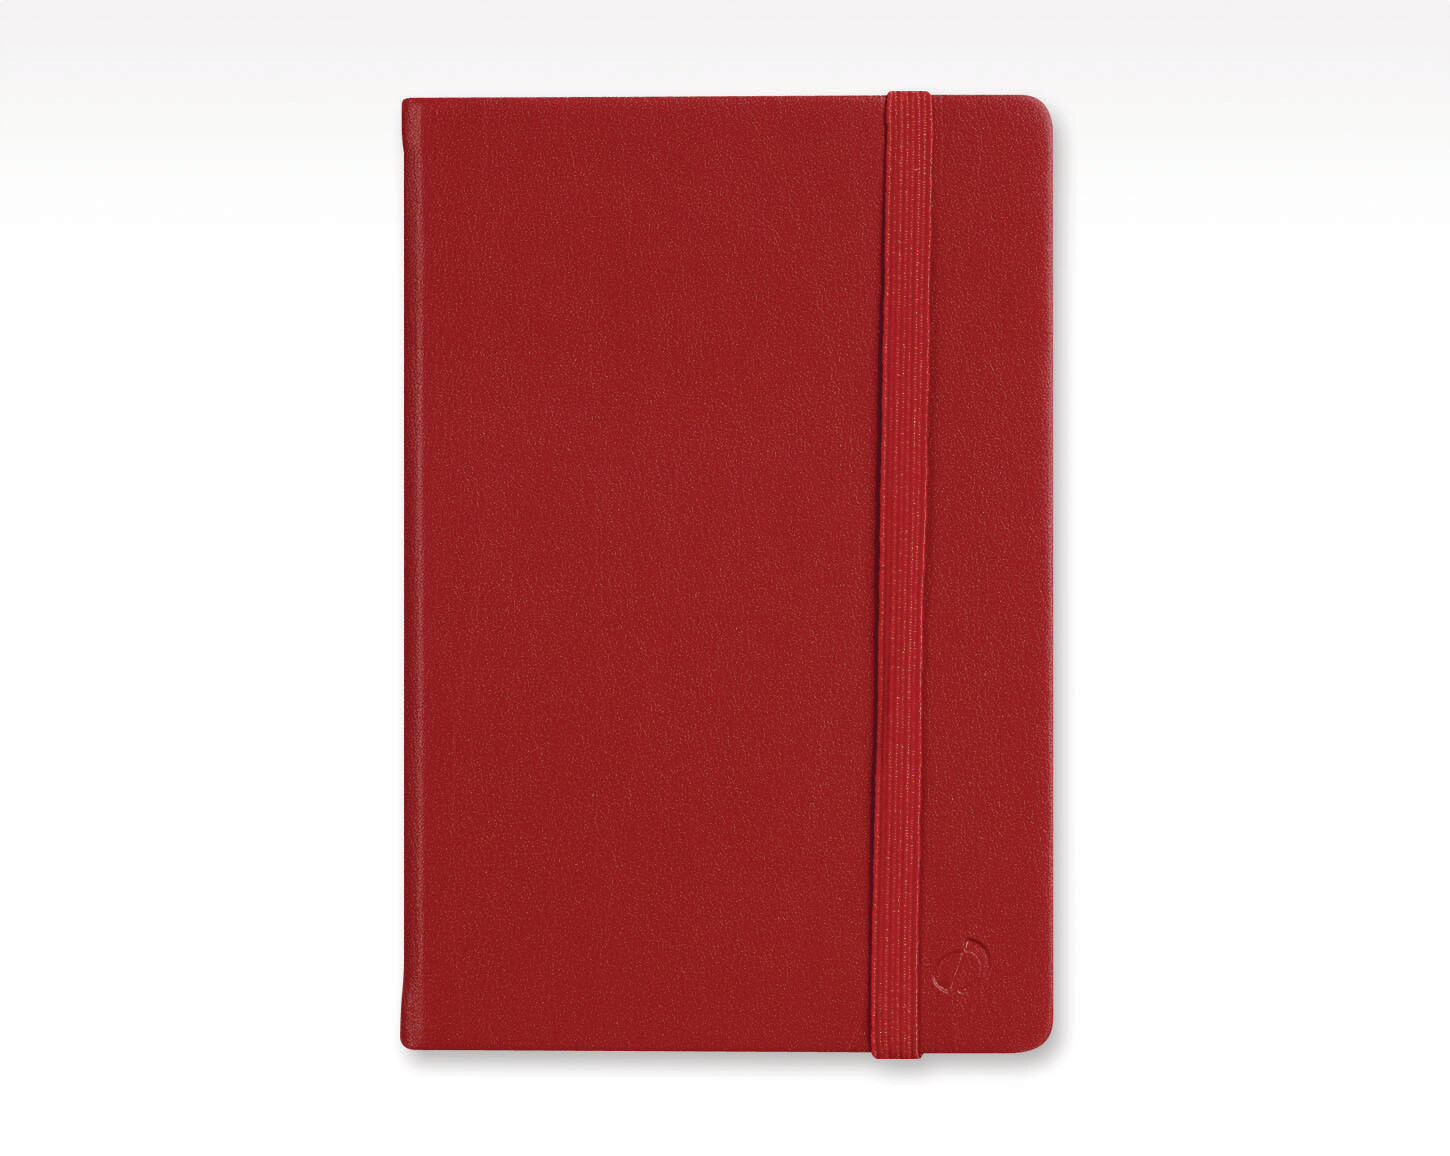 """Notebook, Lined, Habana Red, 6.25"""" x 9.5"""""""